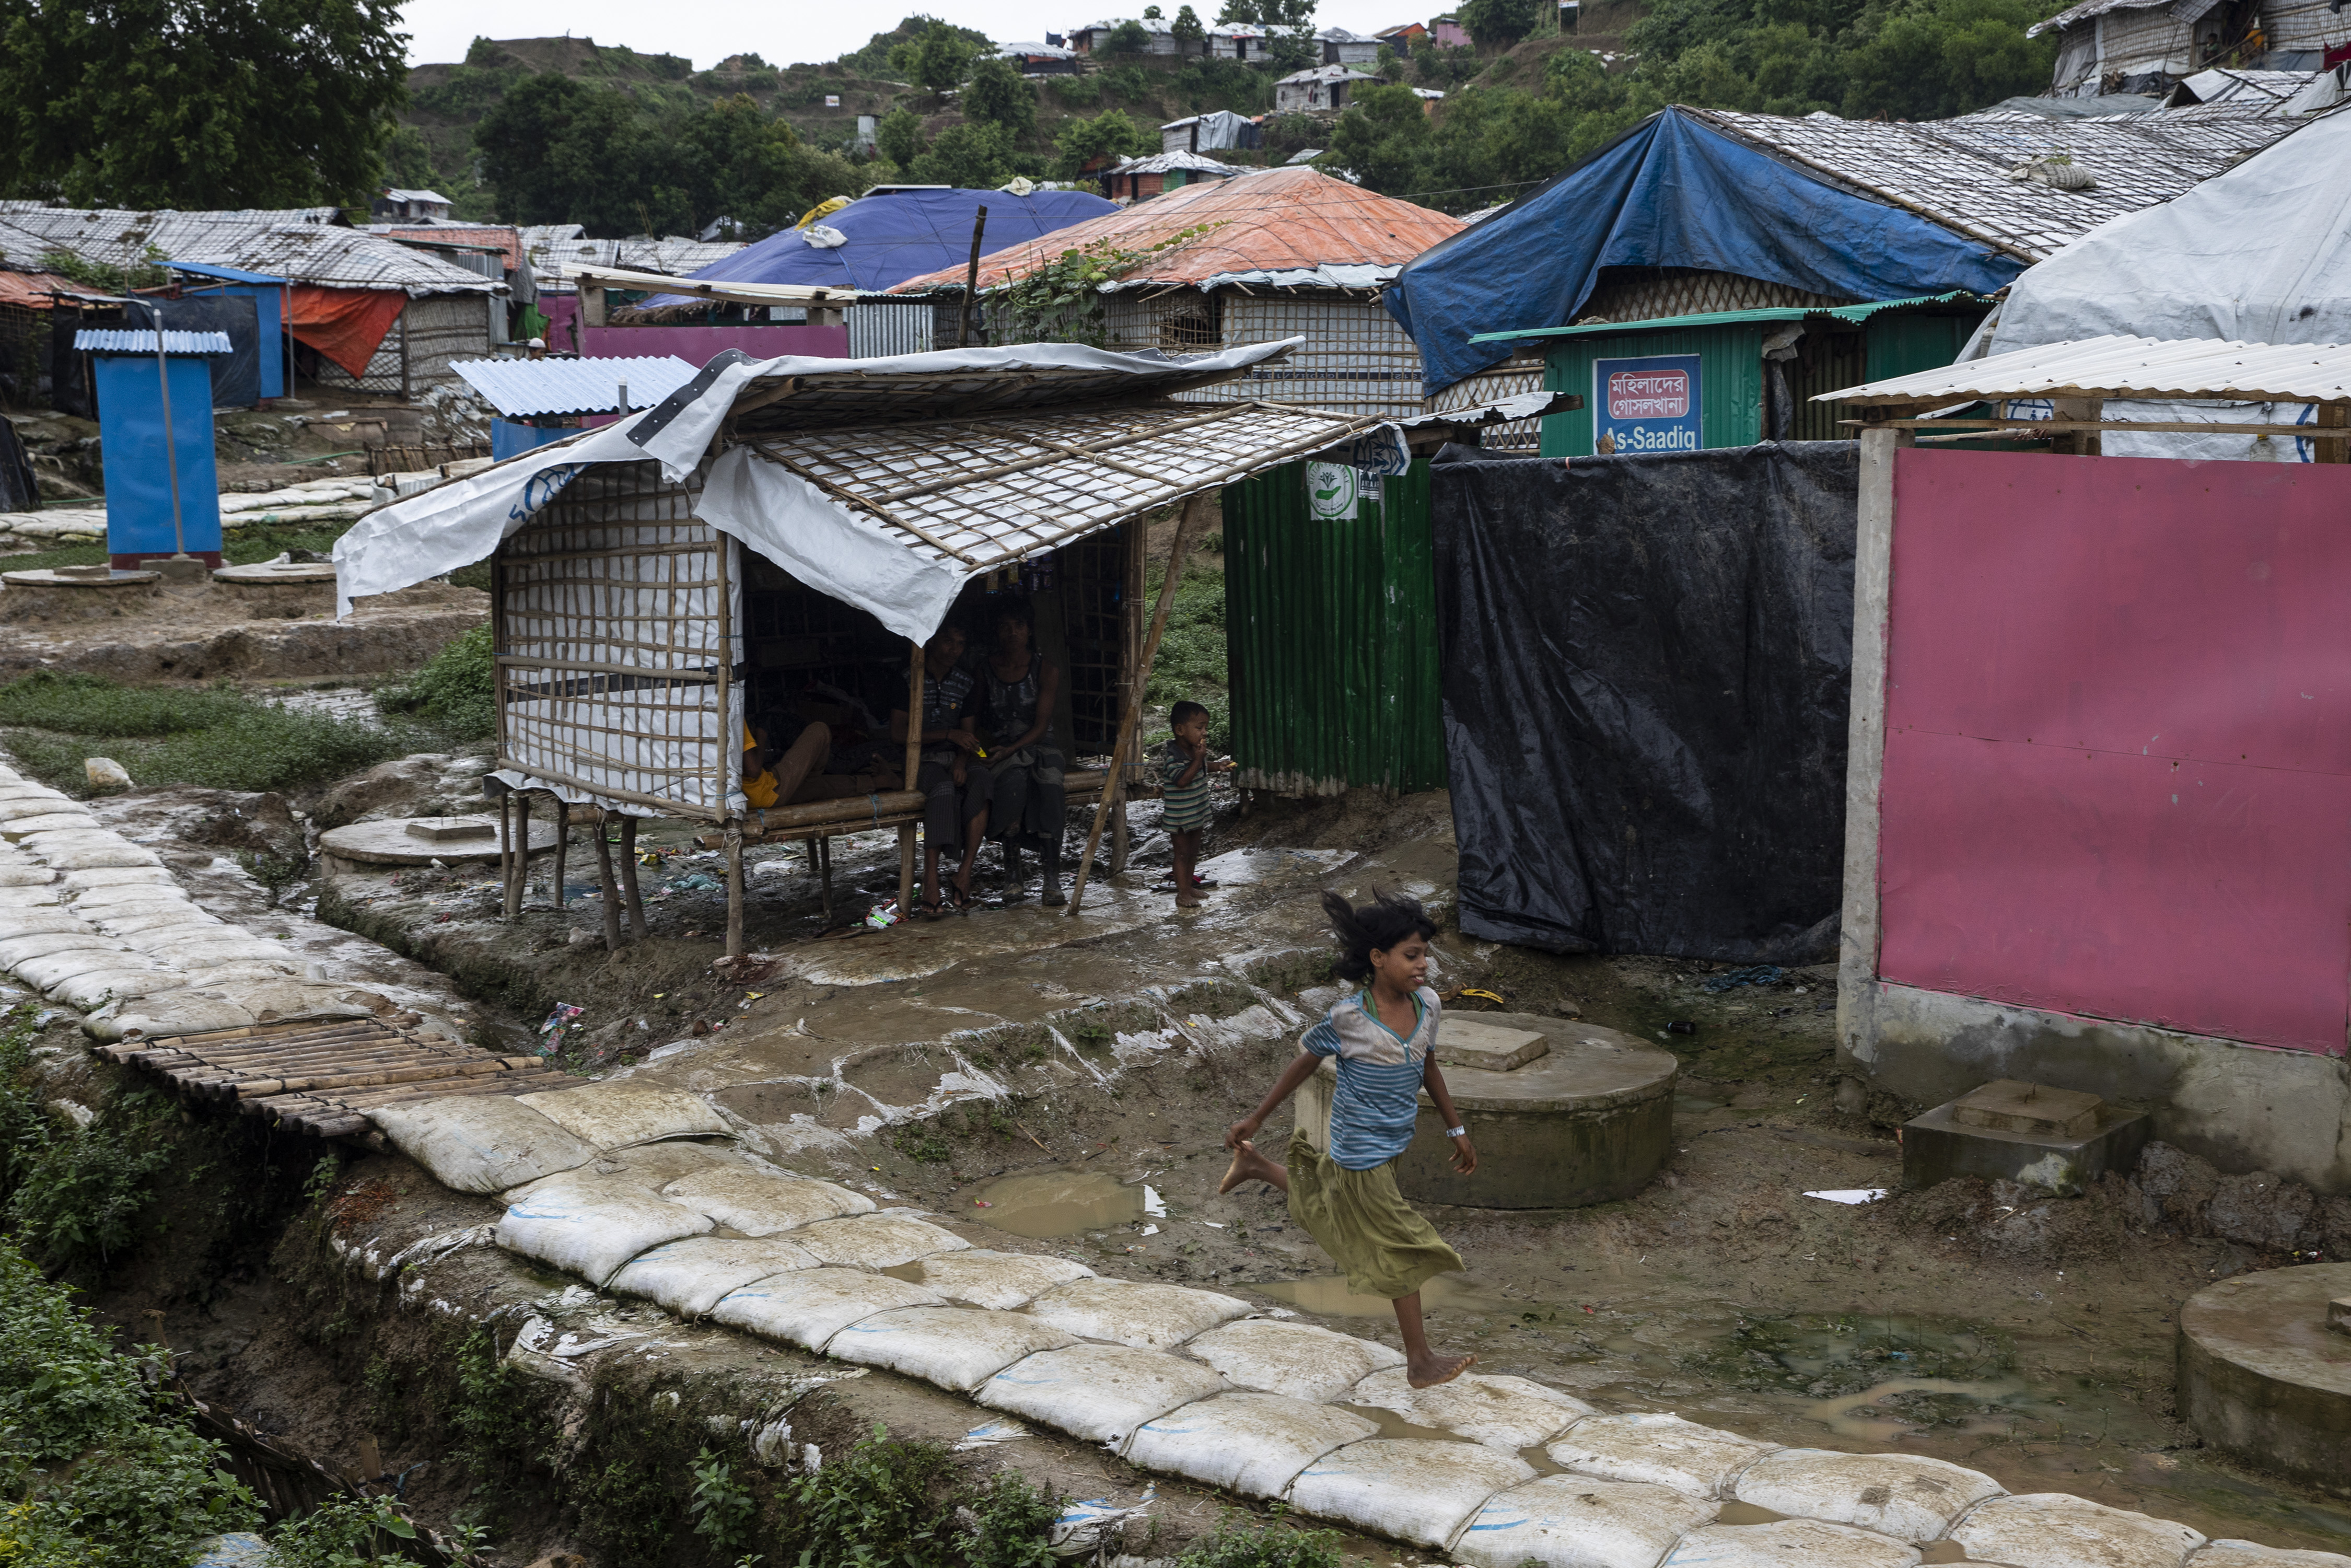 The Rohingya refugee camp in Cox's Bazar, Bangladesh.